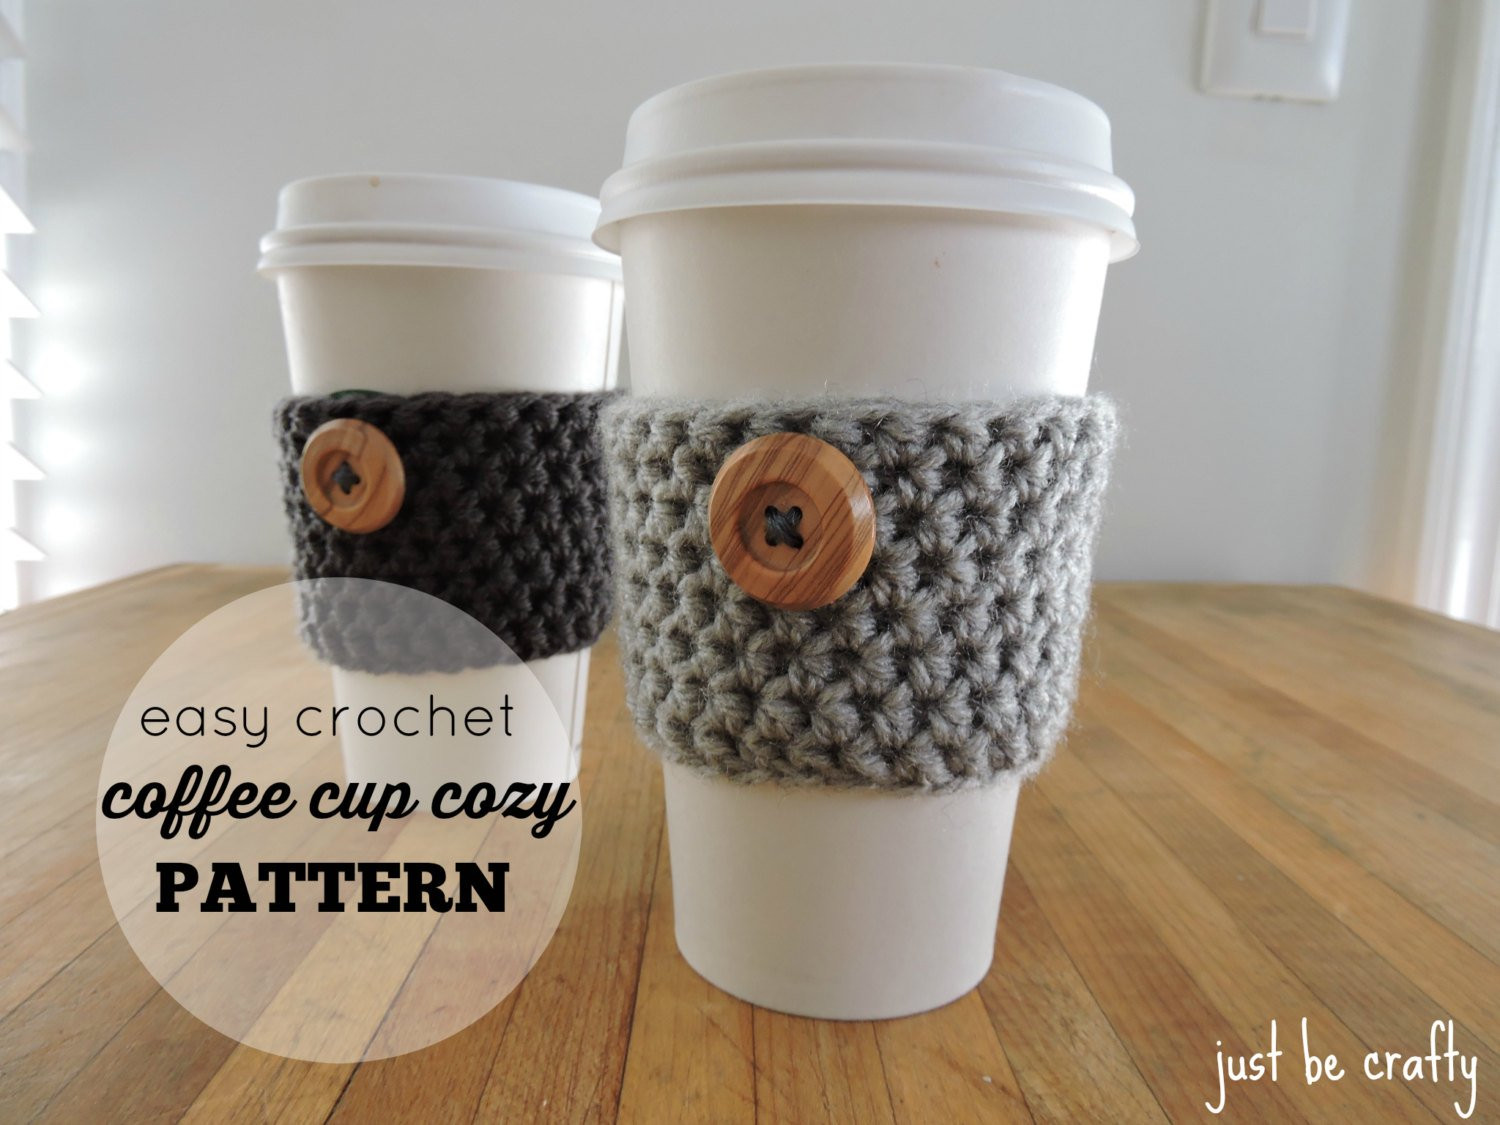 Crochet Coffee Cup Cozy Inspirational Crochet Coffee Cup Cozy Pattern Pdf Download Coffee Cup Cozy Of Crochet Coffee Cup Cozy Luxury Pdf Crochet Pattern Coffee Mug Cozy with button by